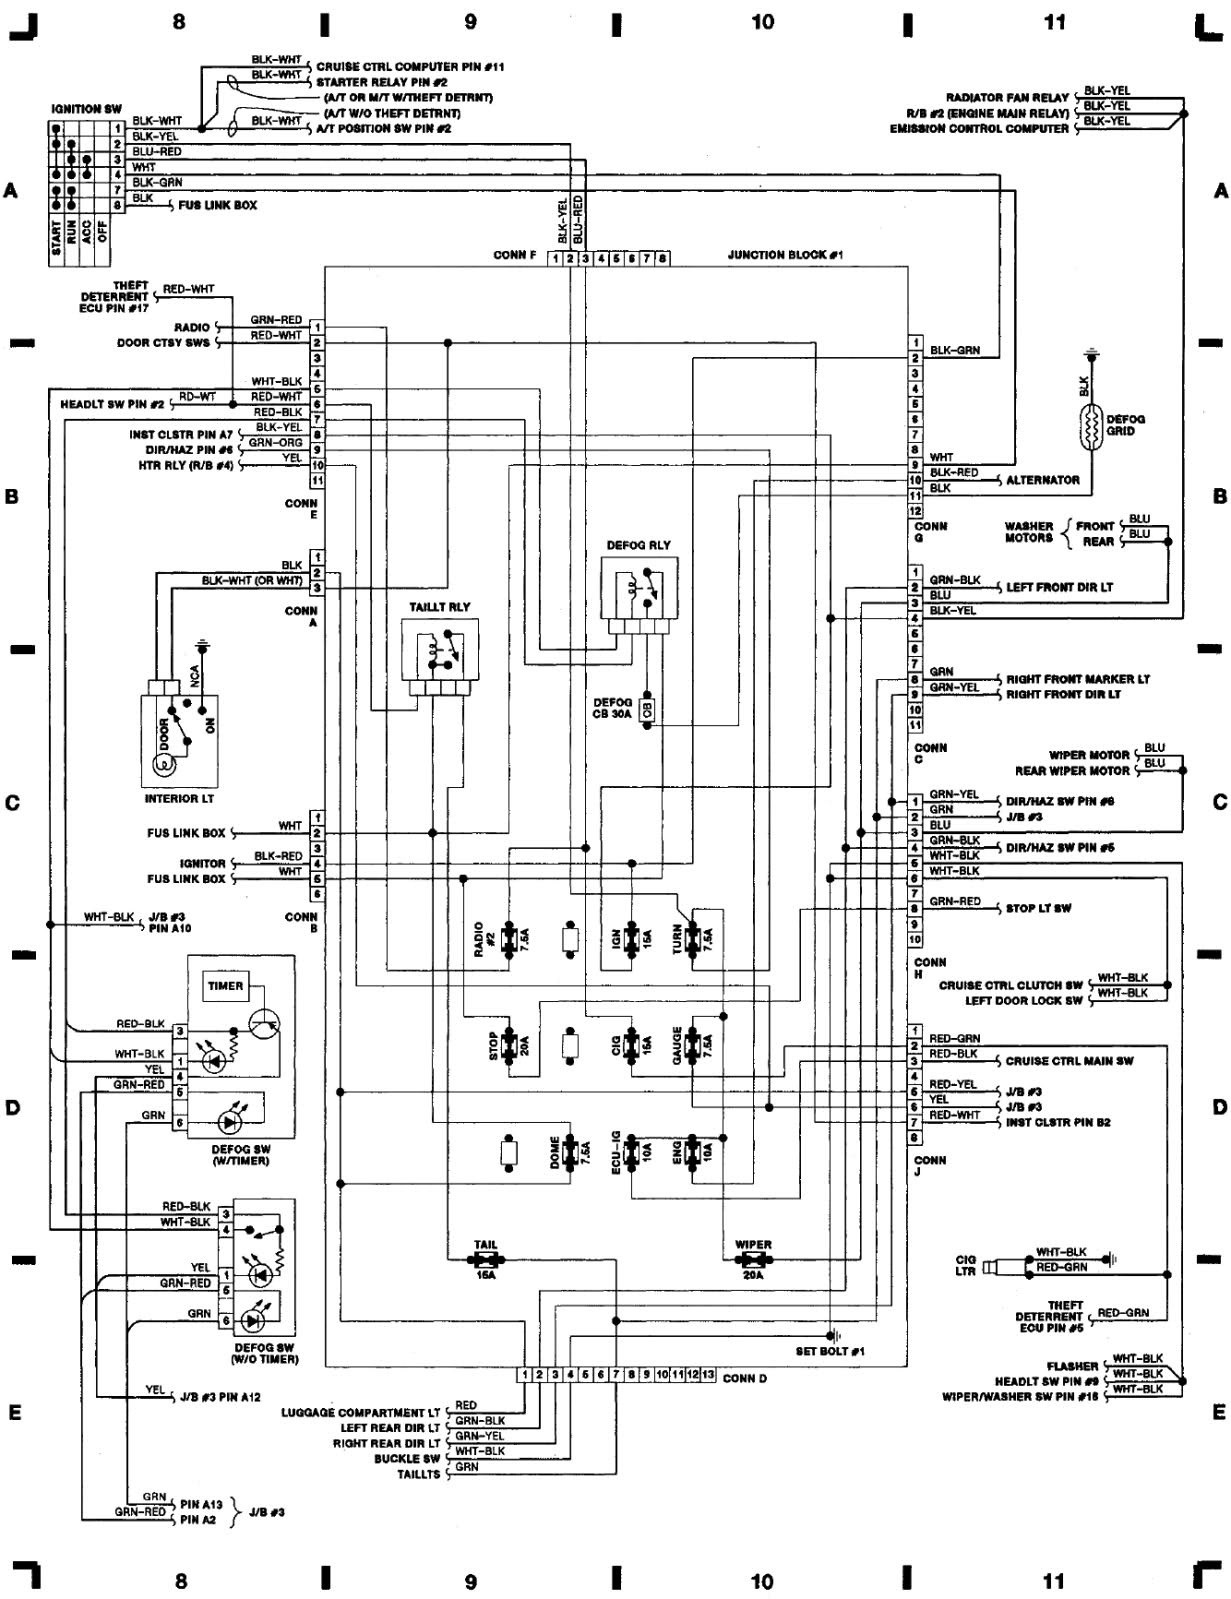 Cw 82 Corolla Wiring Diagram Free Download Wiring